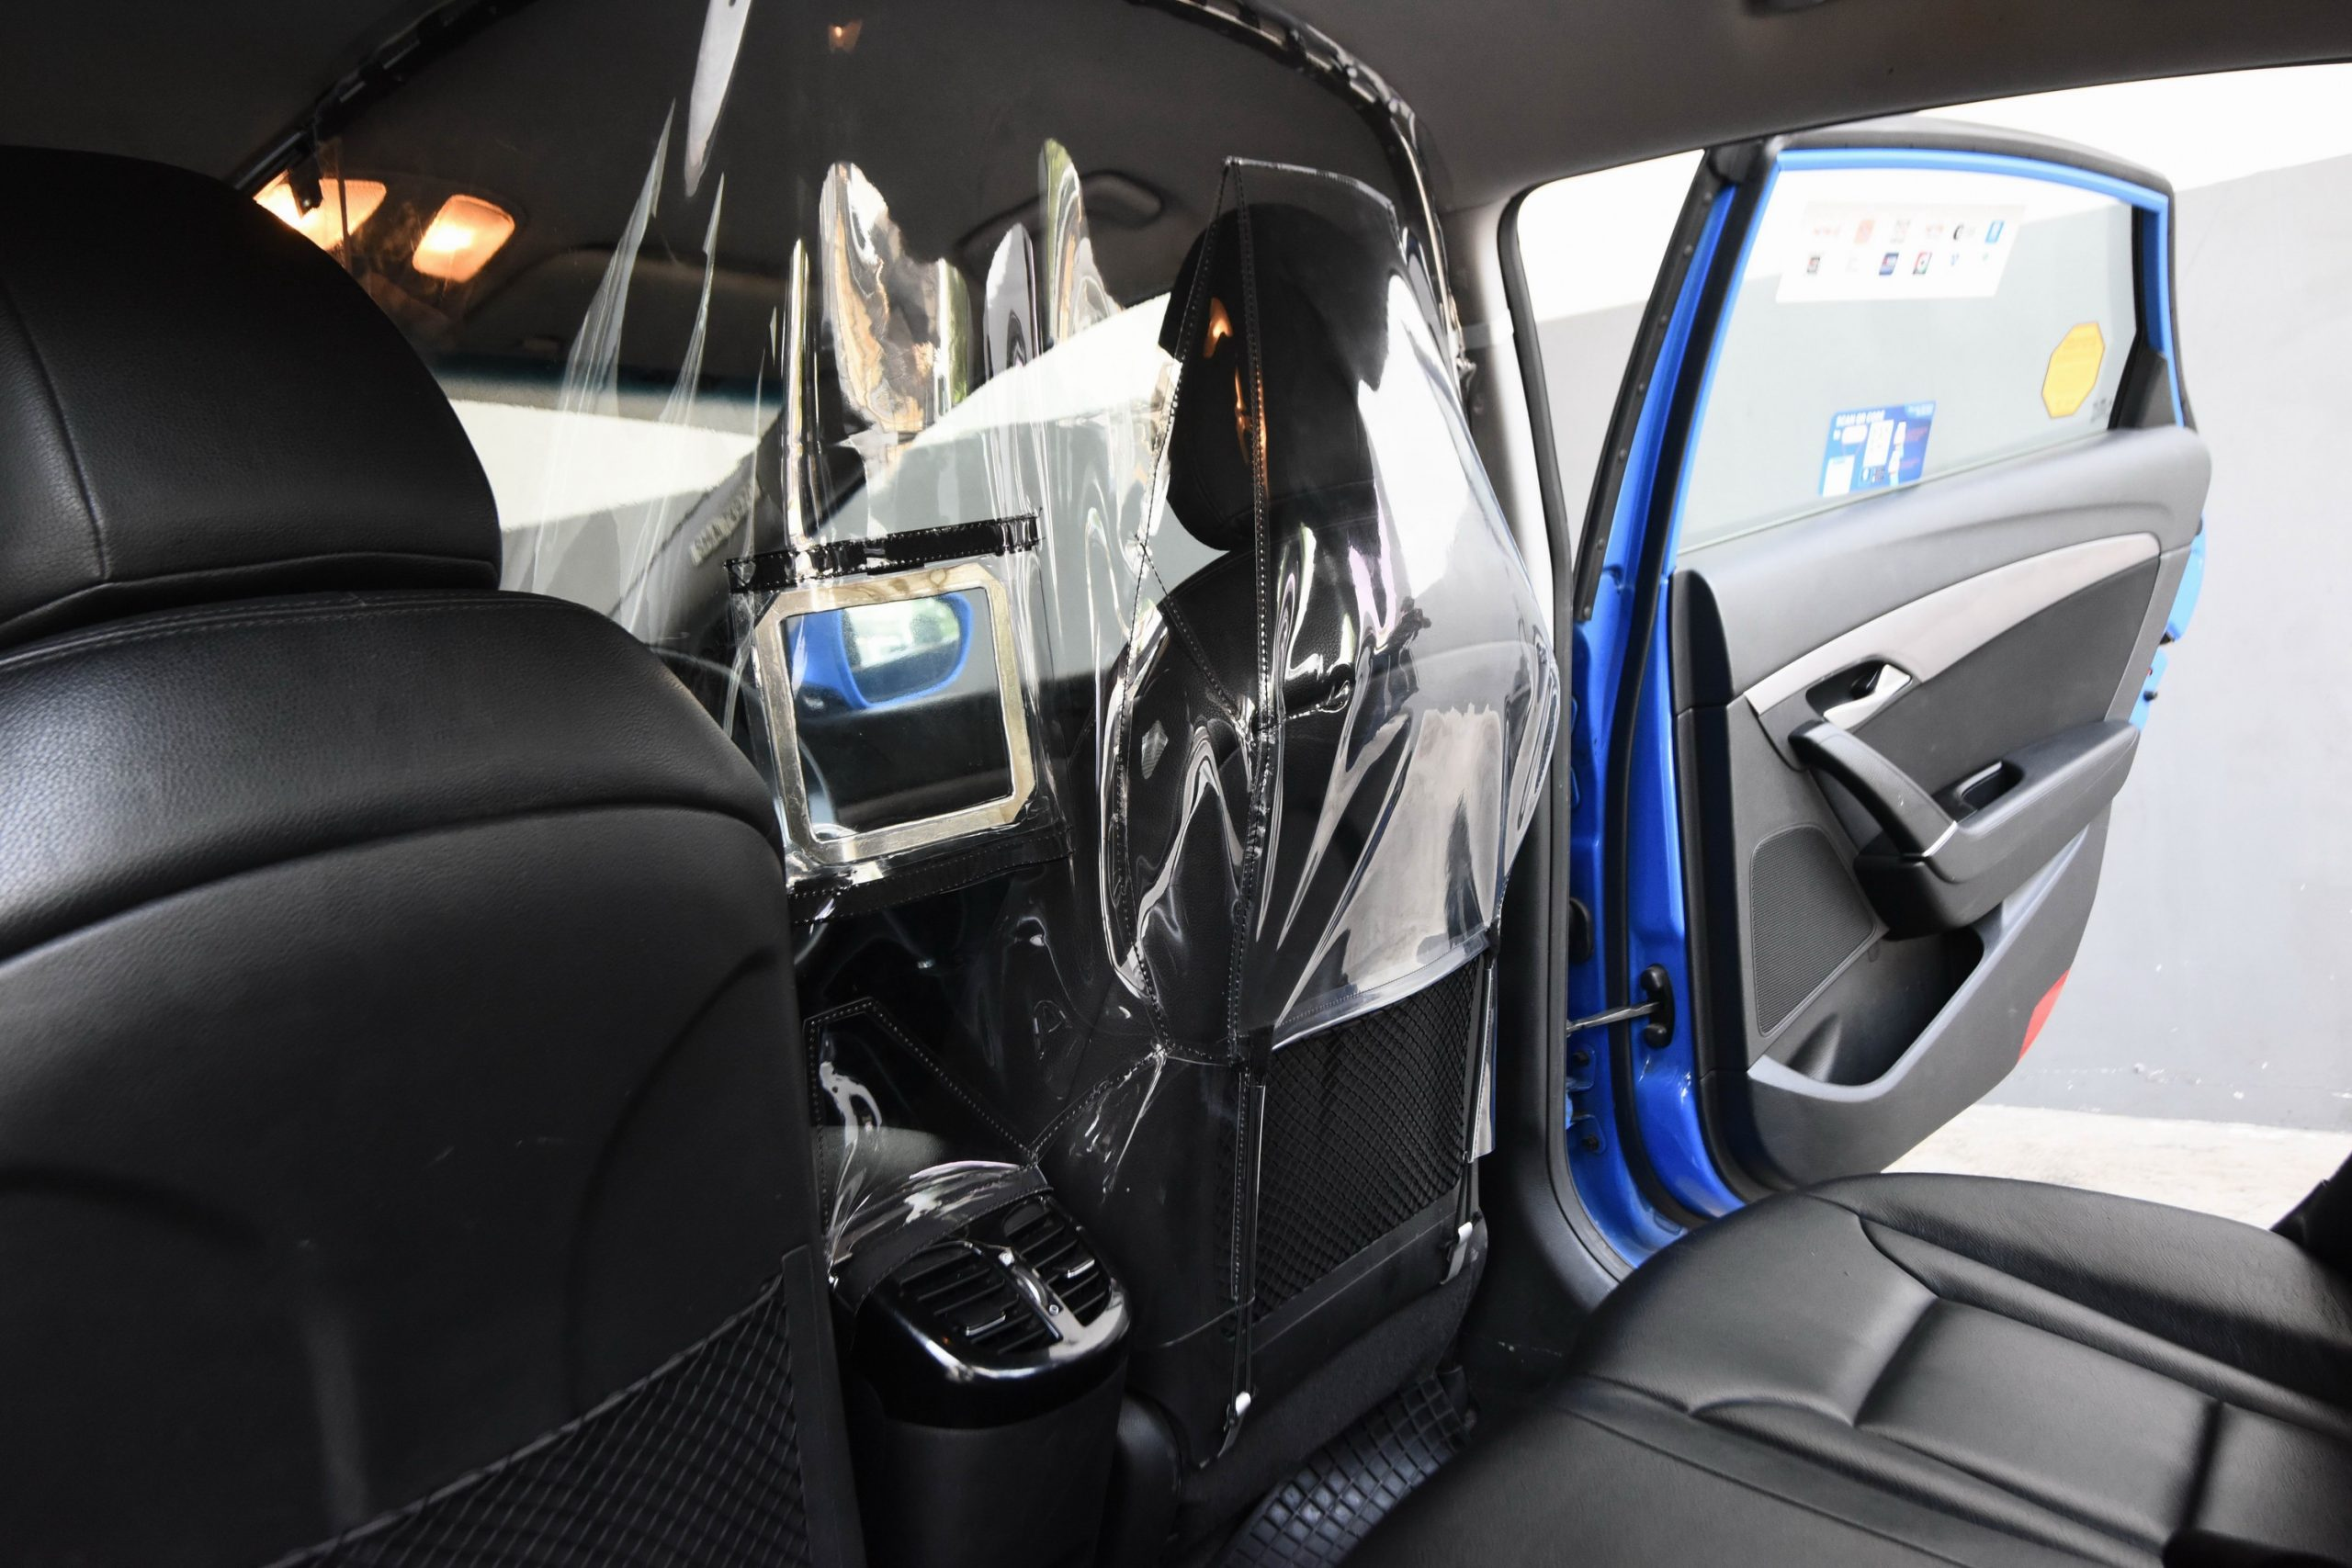 ComfortDelGro Taxi Embarks On Cabin Shield Trial